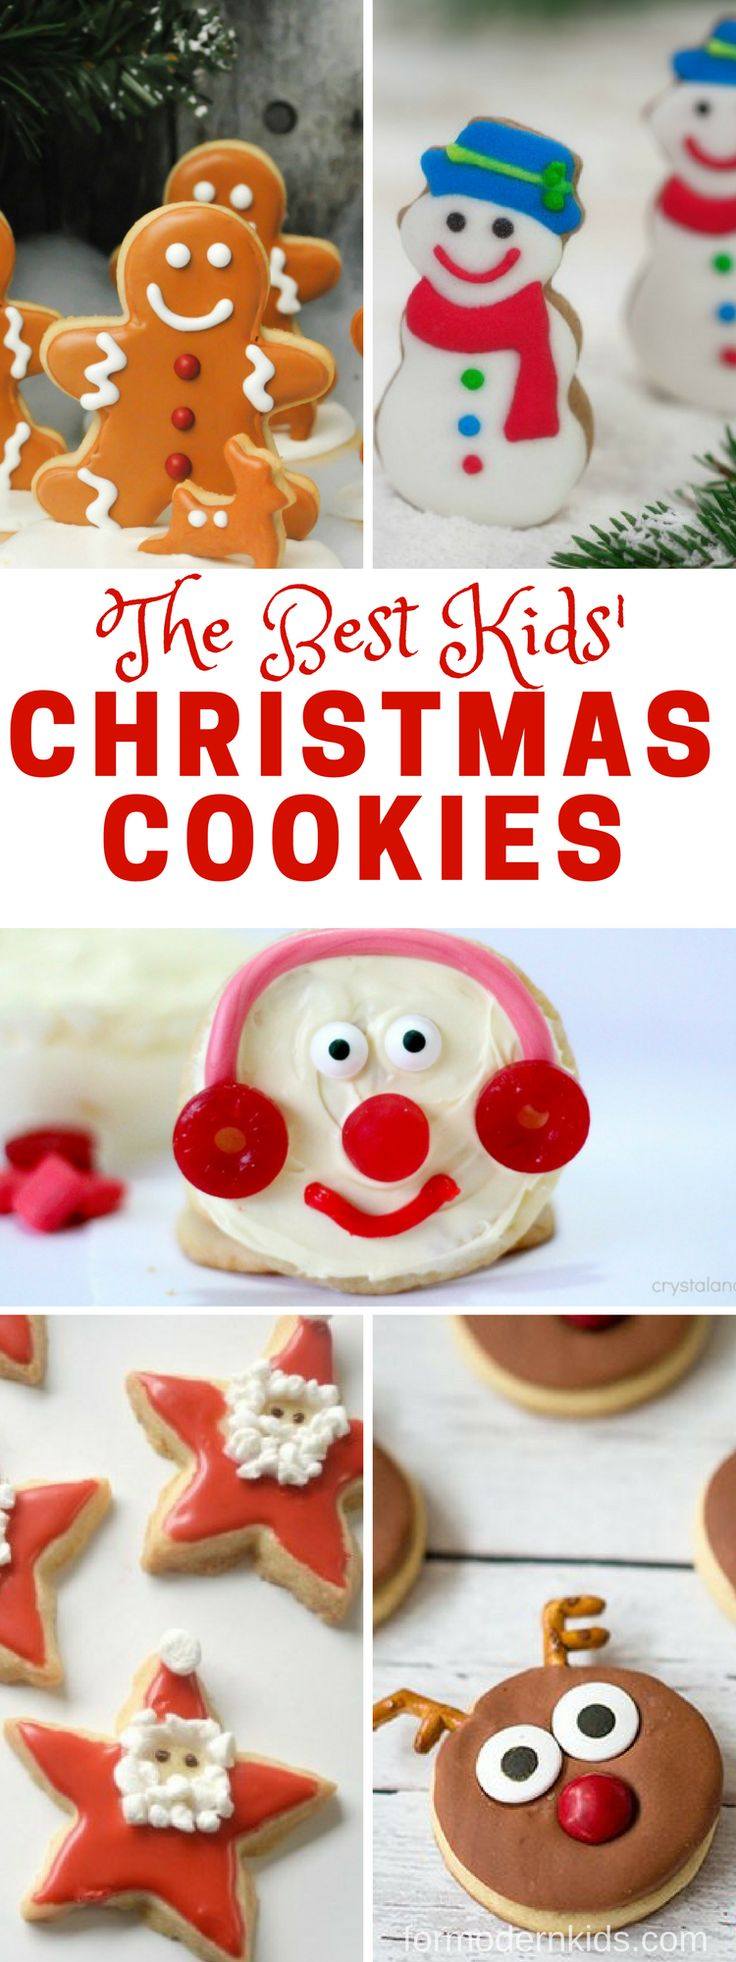 More than 4o of the best Christmas cookies kids will love making! Reindeer cookies, snowman cookies, santa cookies and so many more fun cookies for the holidays. You can even make one each night as a countdown for the 25 days of Christmas. #ChristmasCookies #Christmas